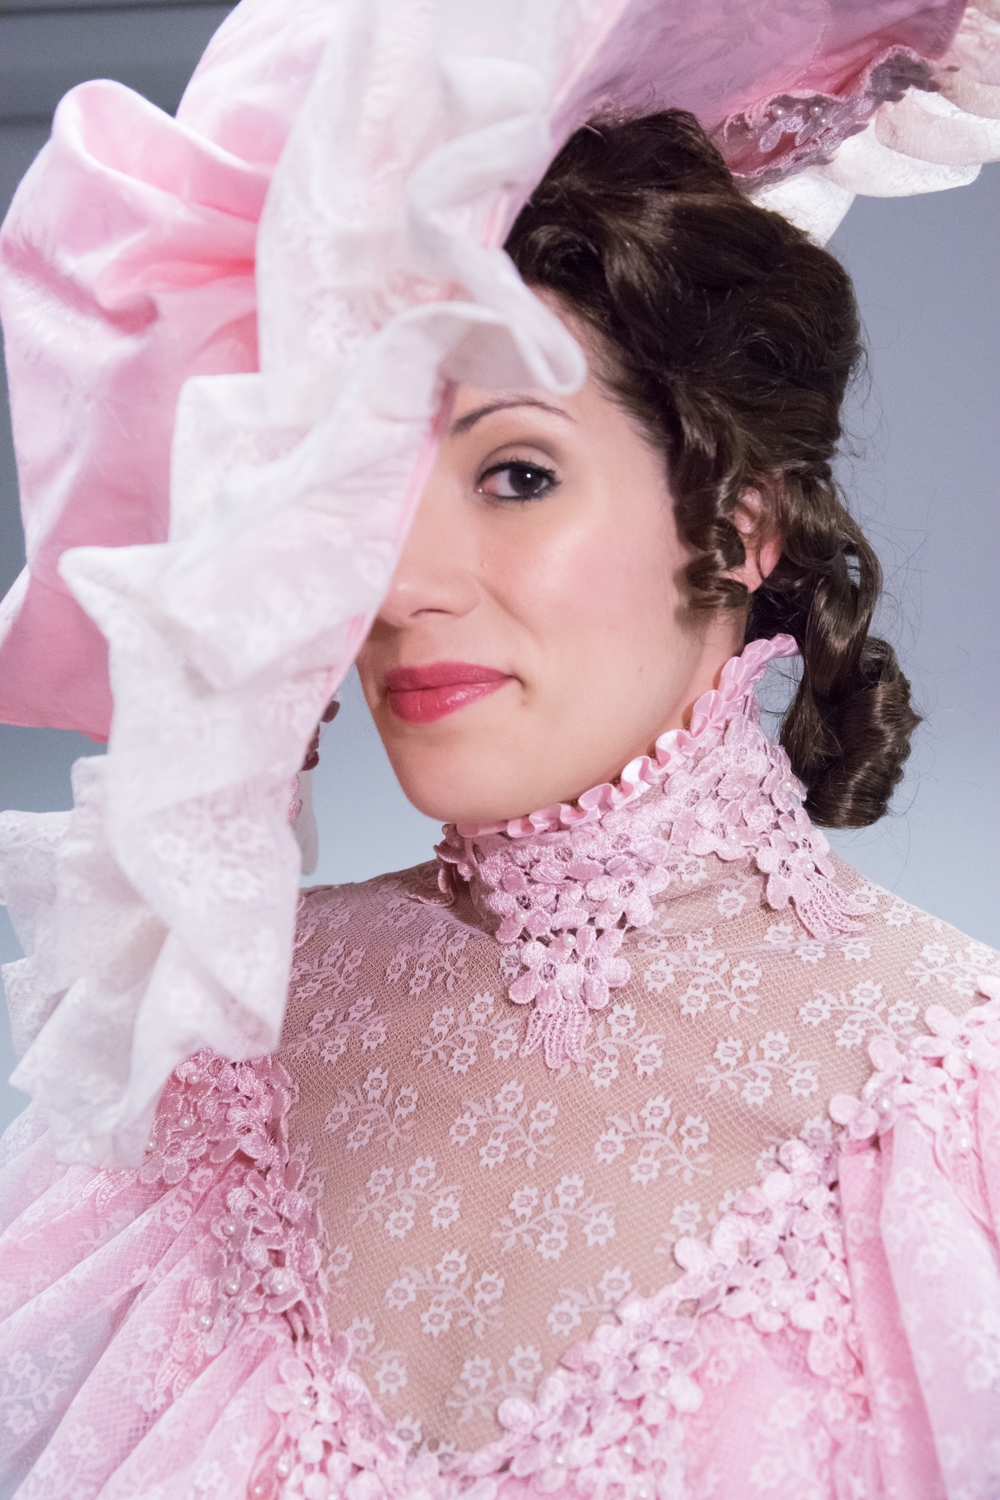 Eliza Doolittle, played by Kate Neubert-Lechner